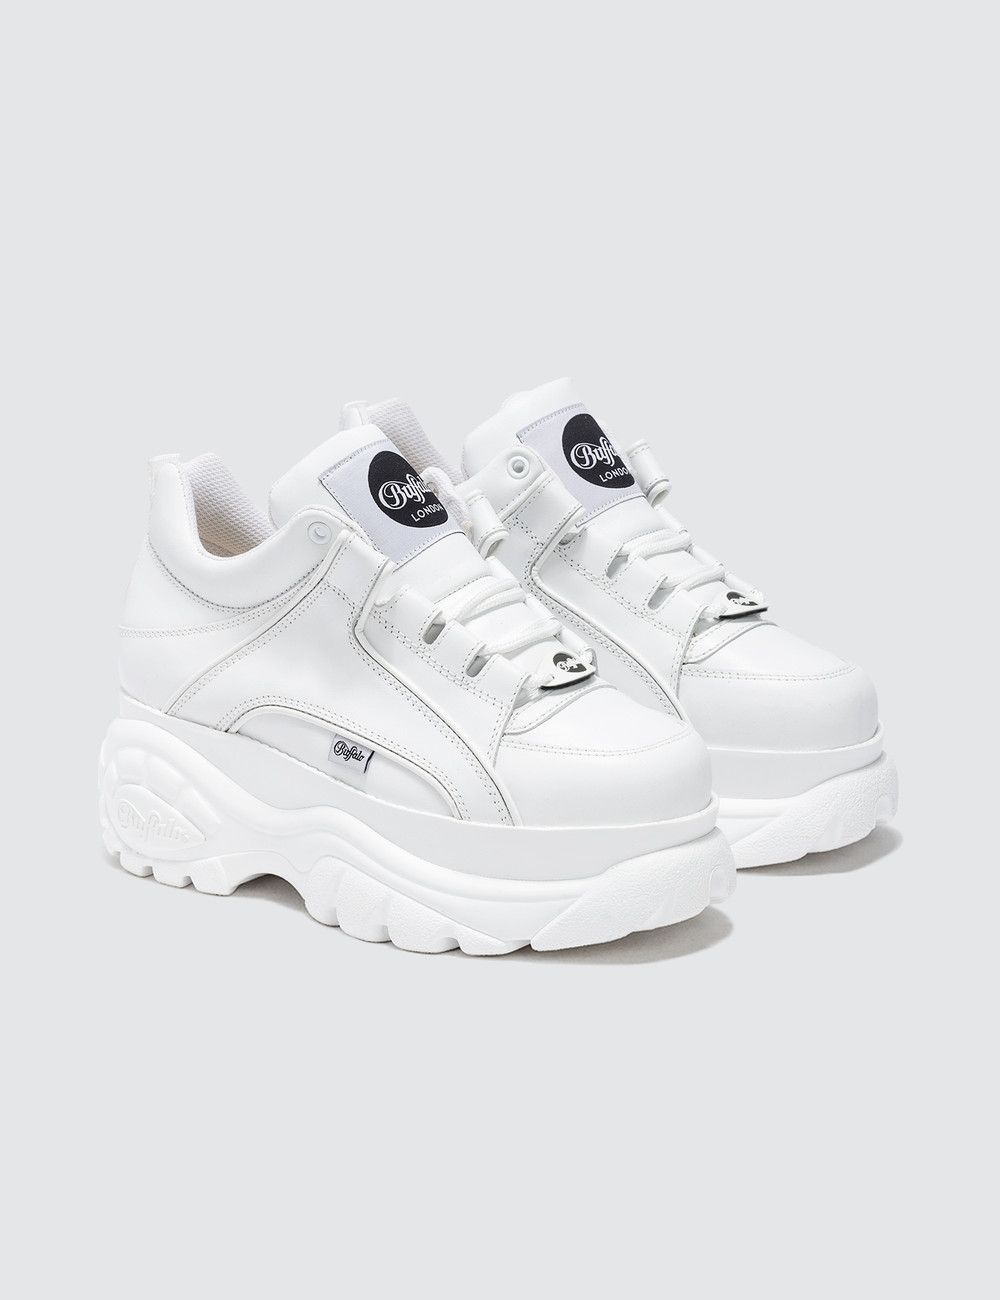 4a5e9dfcfe5 Buffalo Classic White Low-top Platform Sneakers in 2019 | Stuff ...